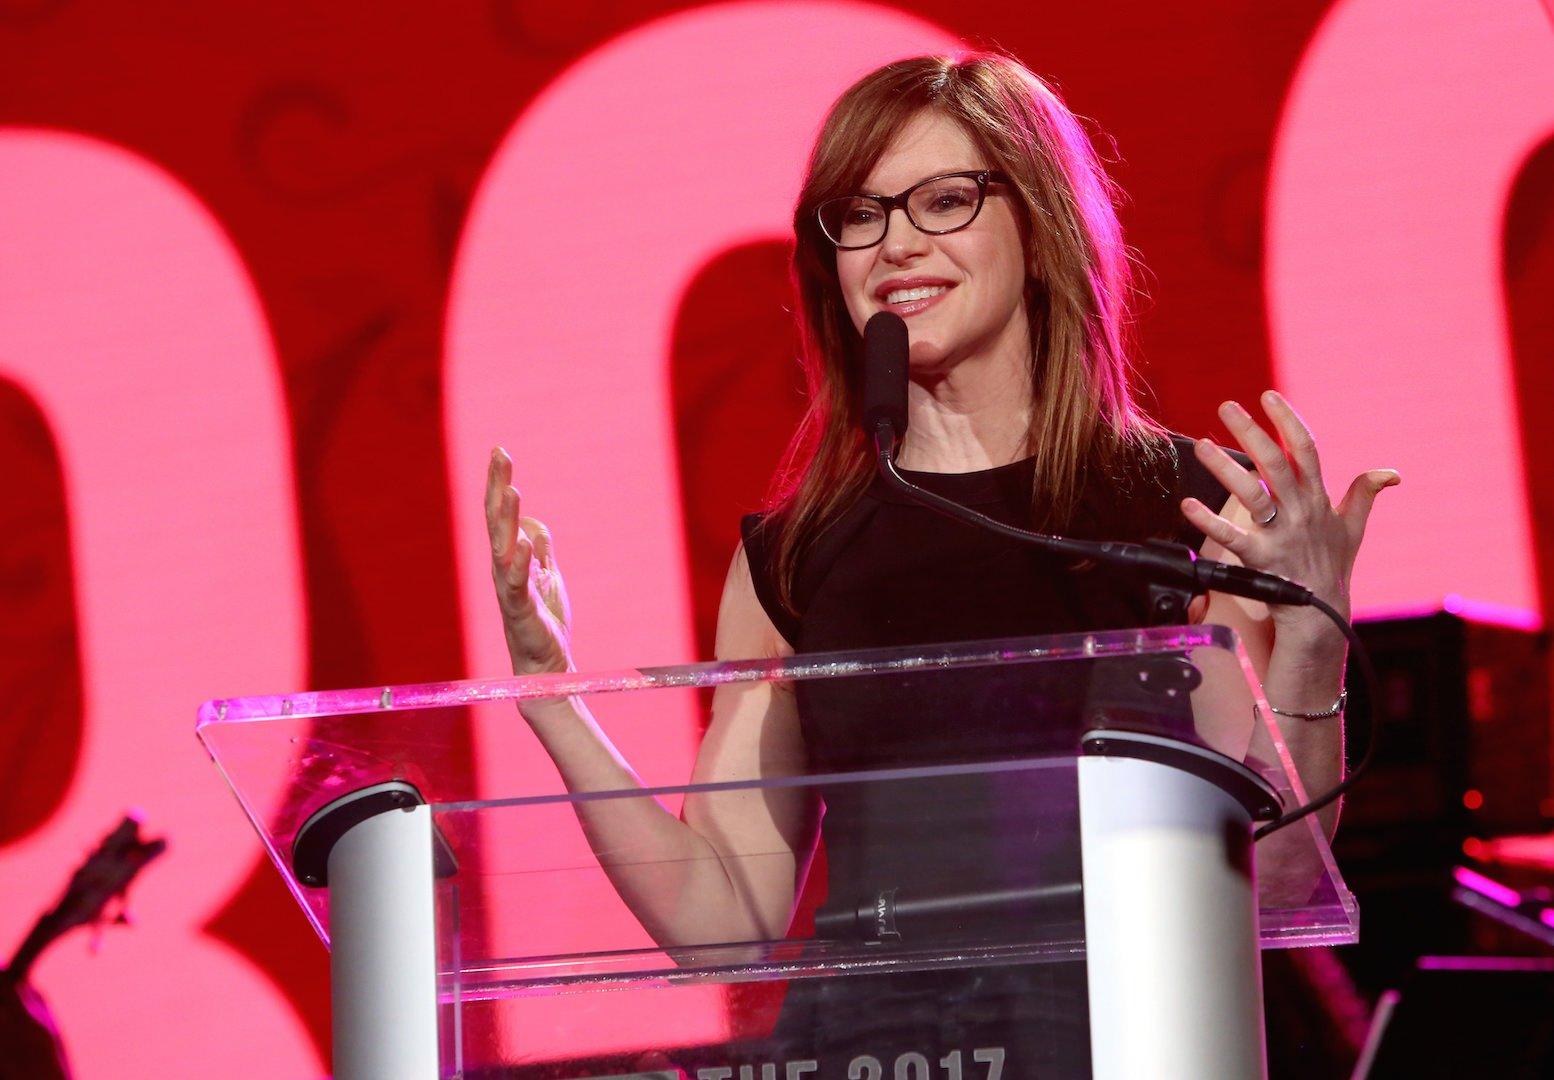 Singer-songwriter Lisa Loeb speaks on stage at the She Rocks Awards during the 2017 NAMM Show at the Anaheim Convention Center on January 20, 2017 in Anaheim, California. (Photo by Jesse Grant/Getty Images for NAMM)